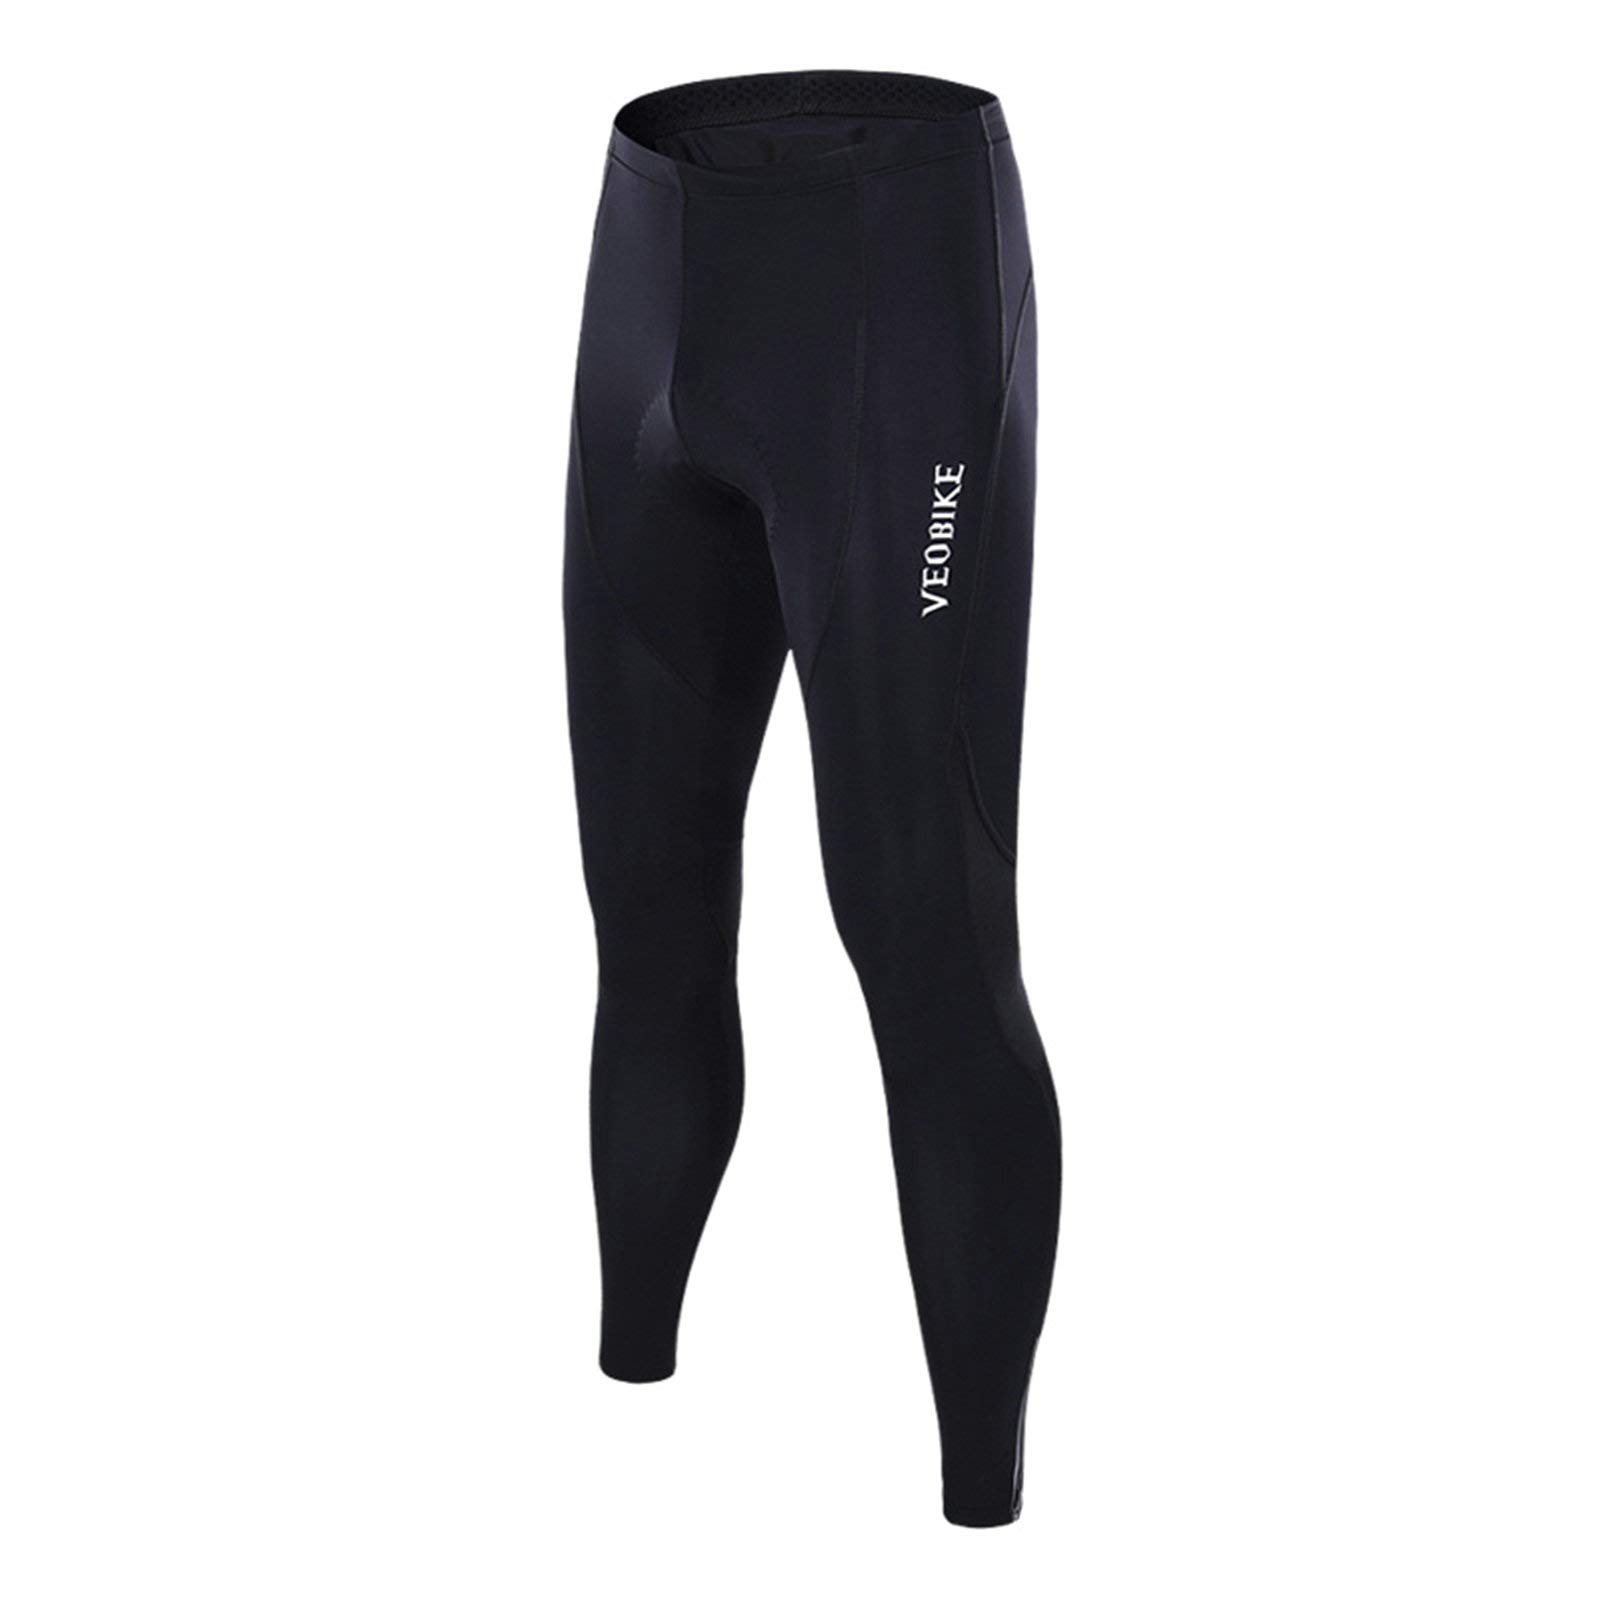 Aooaz Women's Cycling Clothes Riding Wear Mountain Padded Bike Bicycle Pants Tights Black Size S